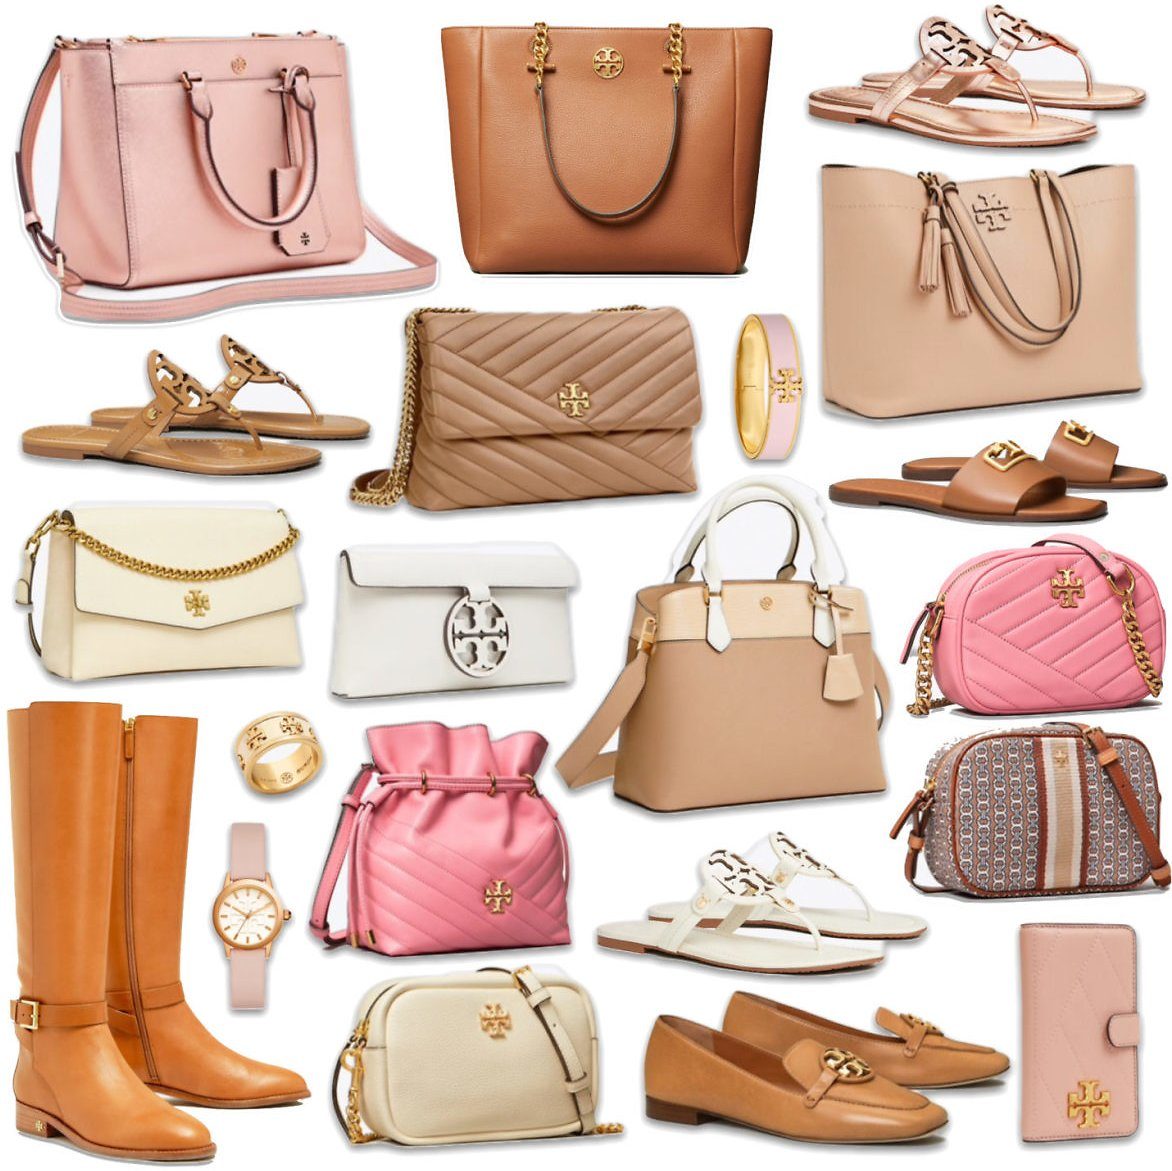 Up to 50% Off Tory Burch Private Sale